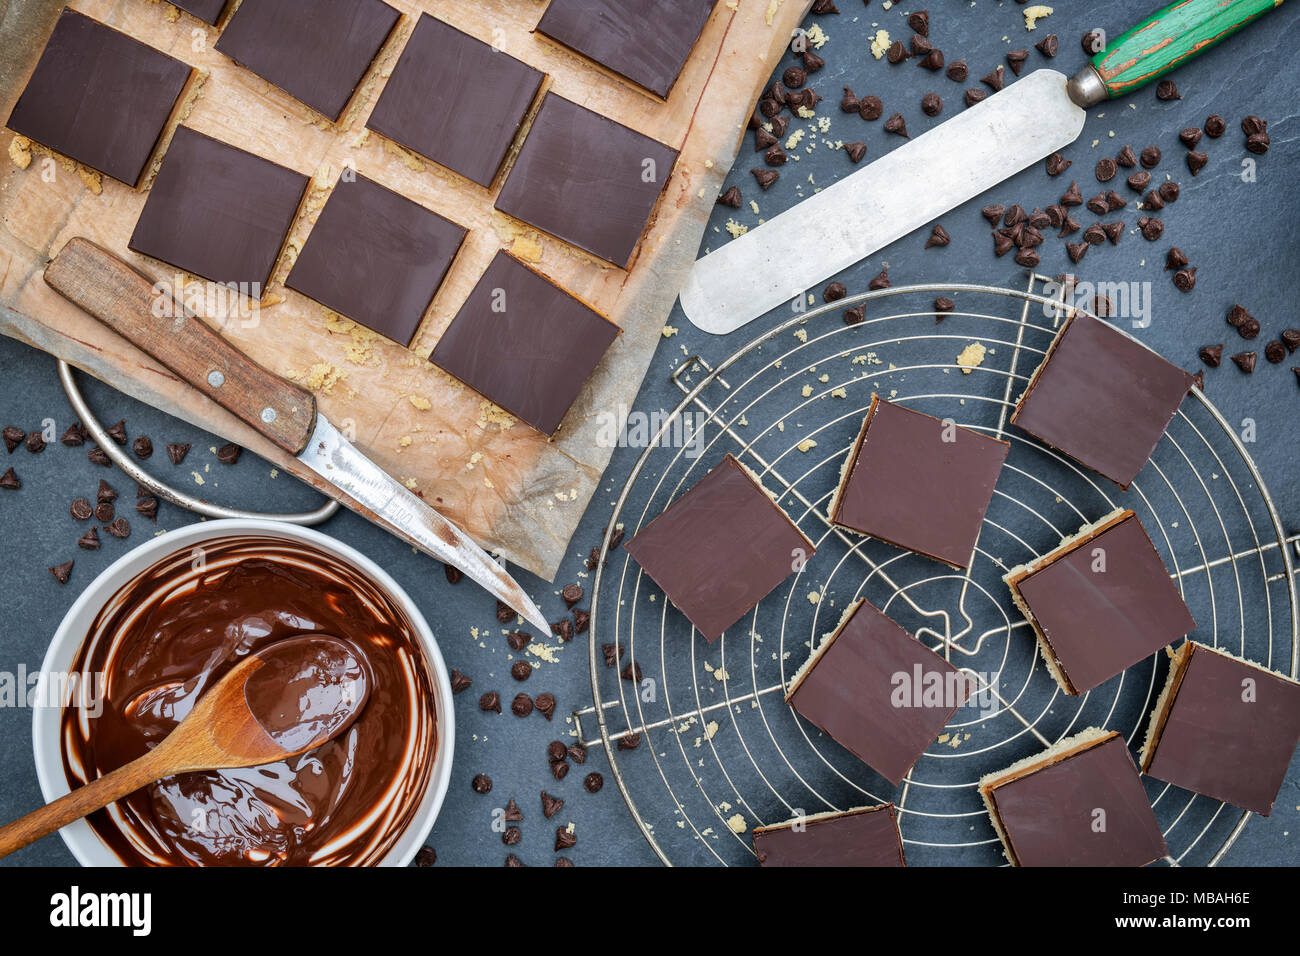 Caramel shortbread / Millionaires shortbread squares with a pallet knife and melted dark chocolate in a bowl on a slate background - Stock Image